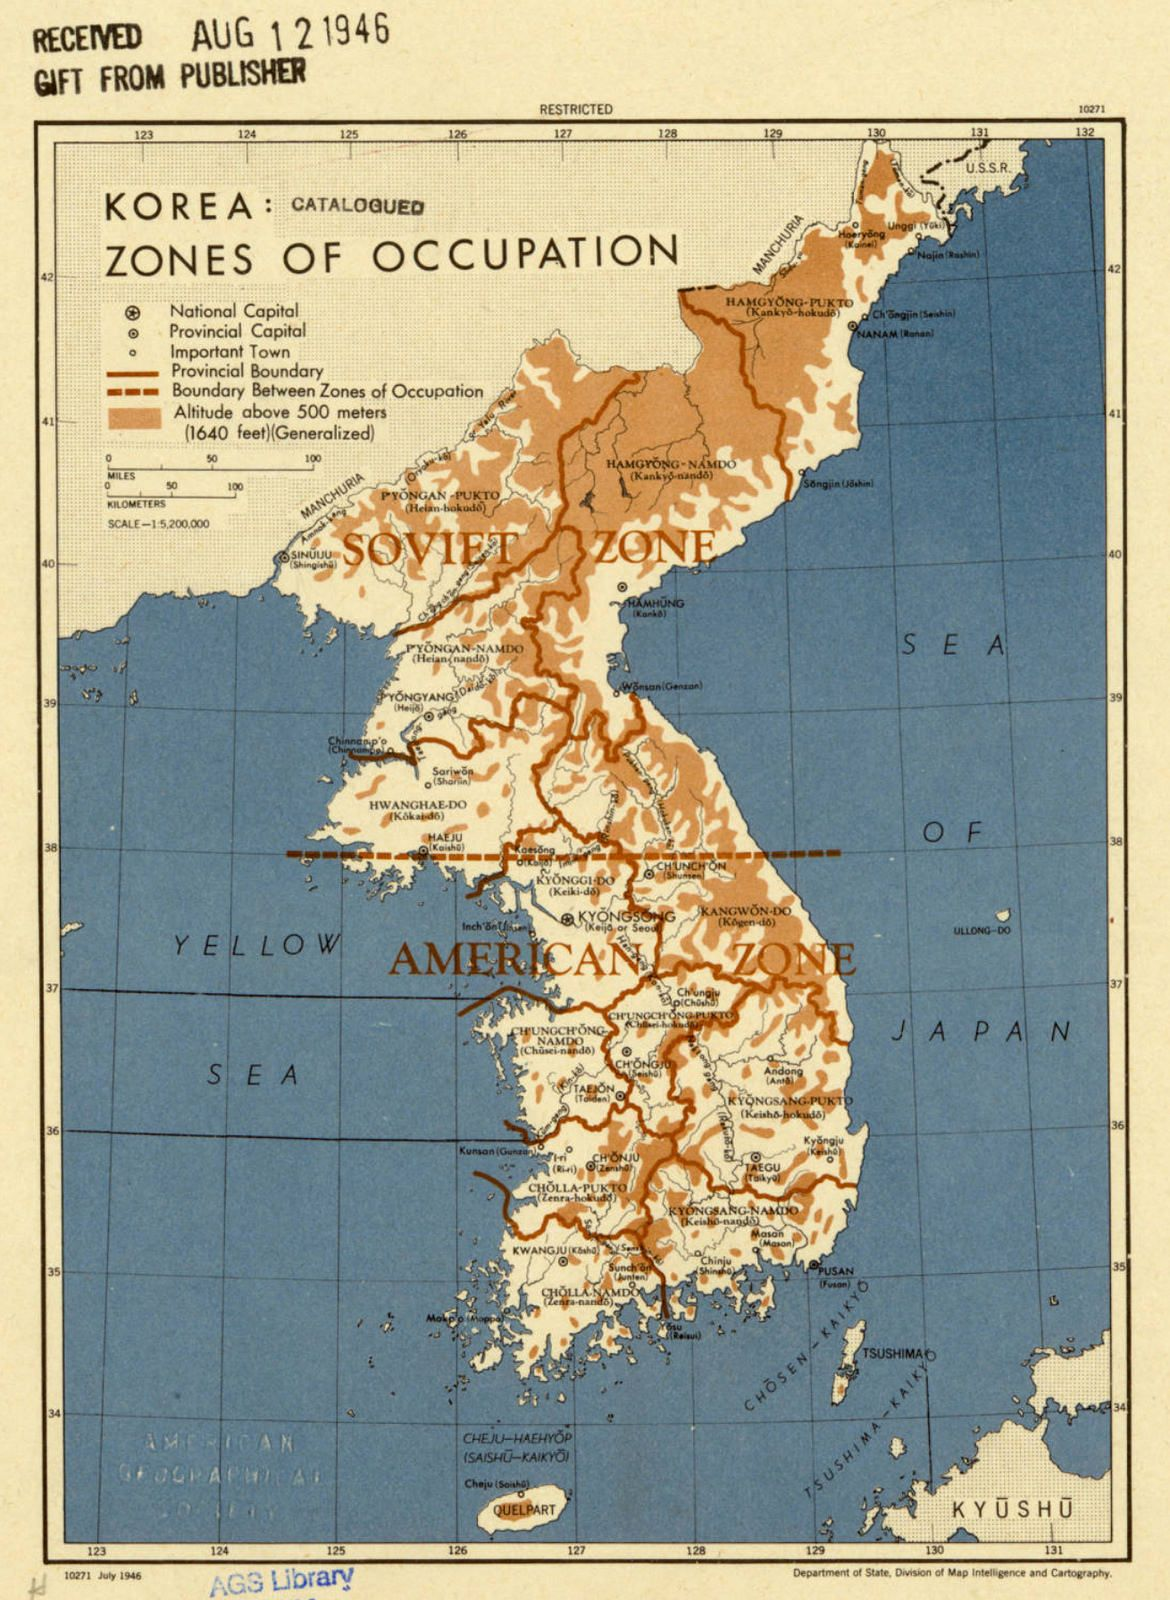 1946 Korea Zones | Maps | Pinterest | Korea